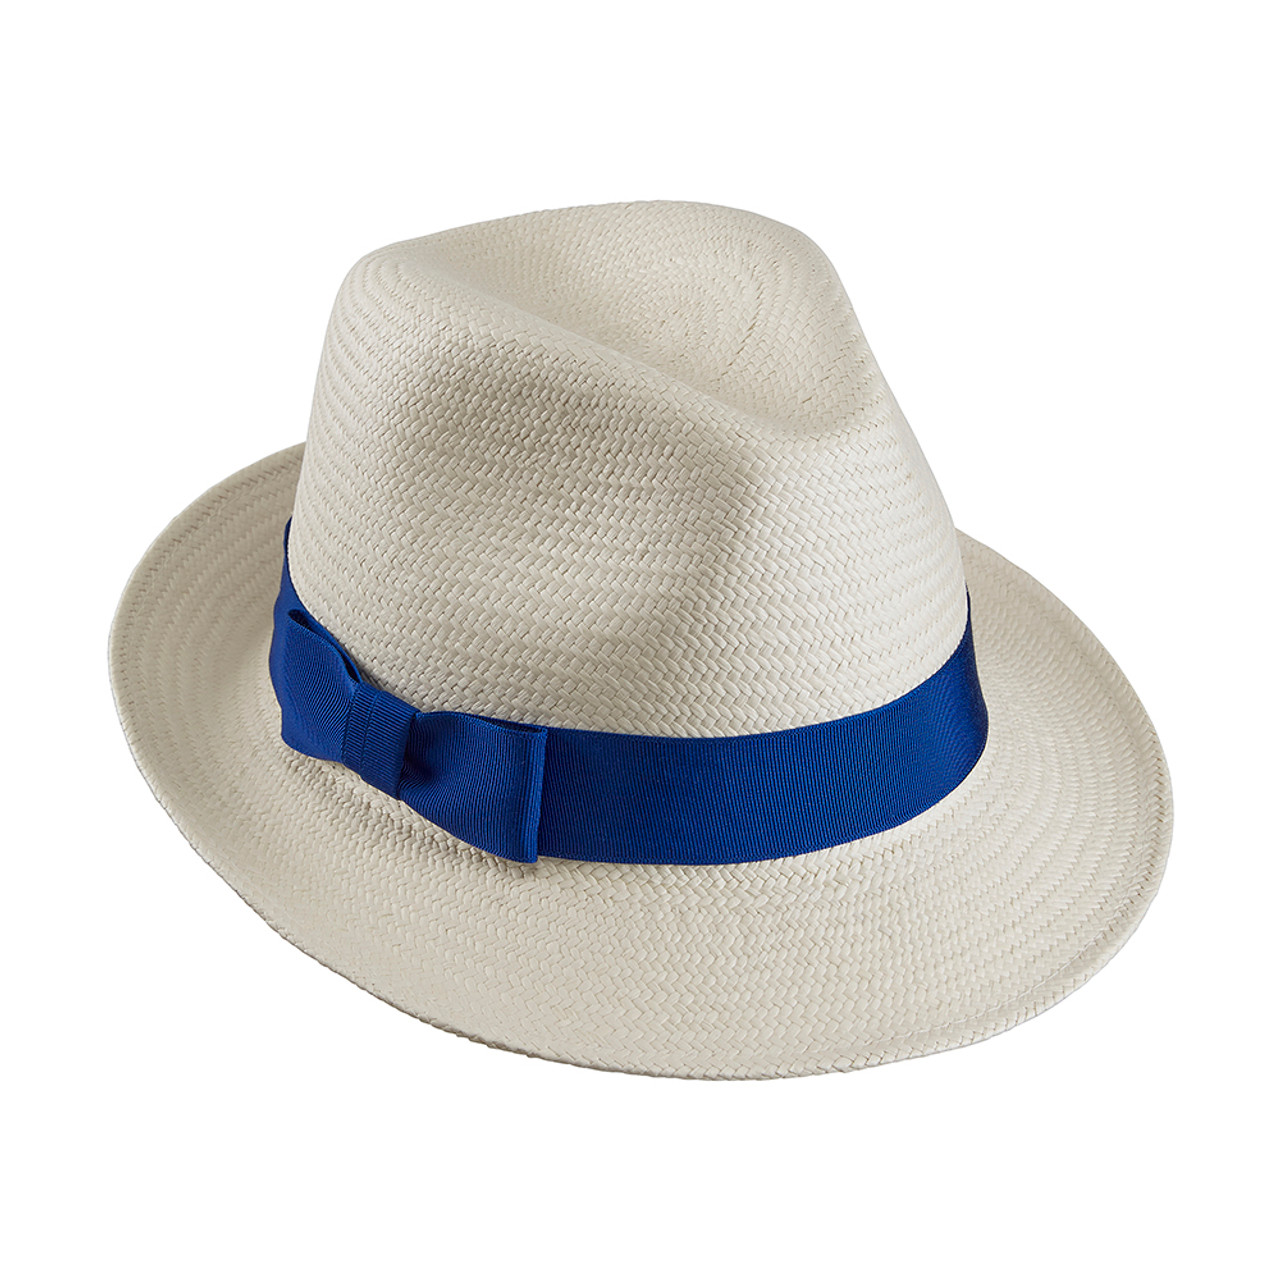 a641aca0a364c0 Ladies Jenny Trilby Panama Hat-Cuenca - The Panama Hat Company